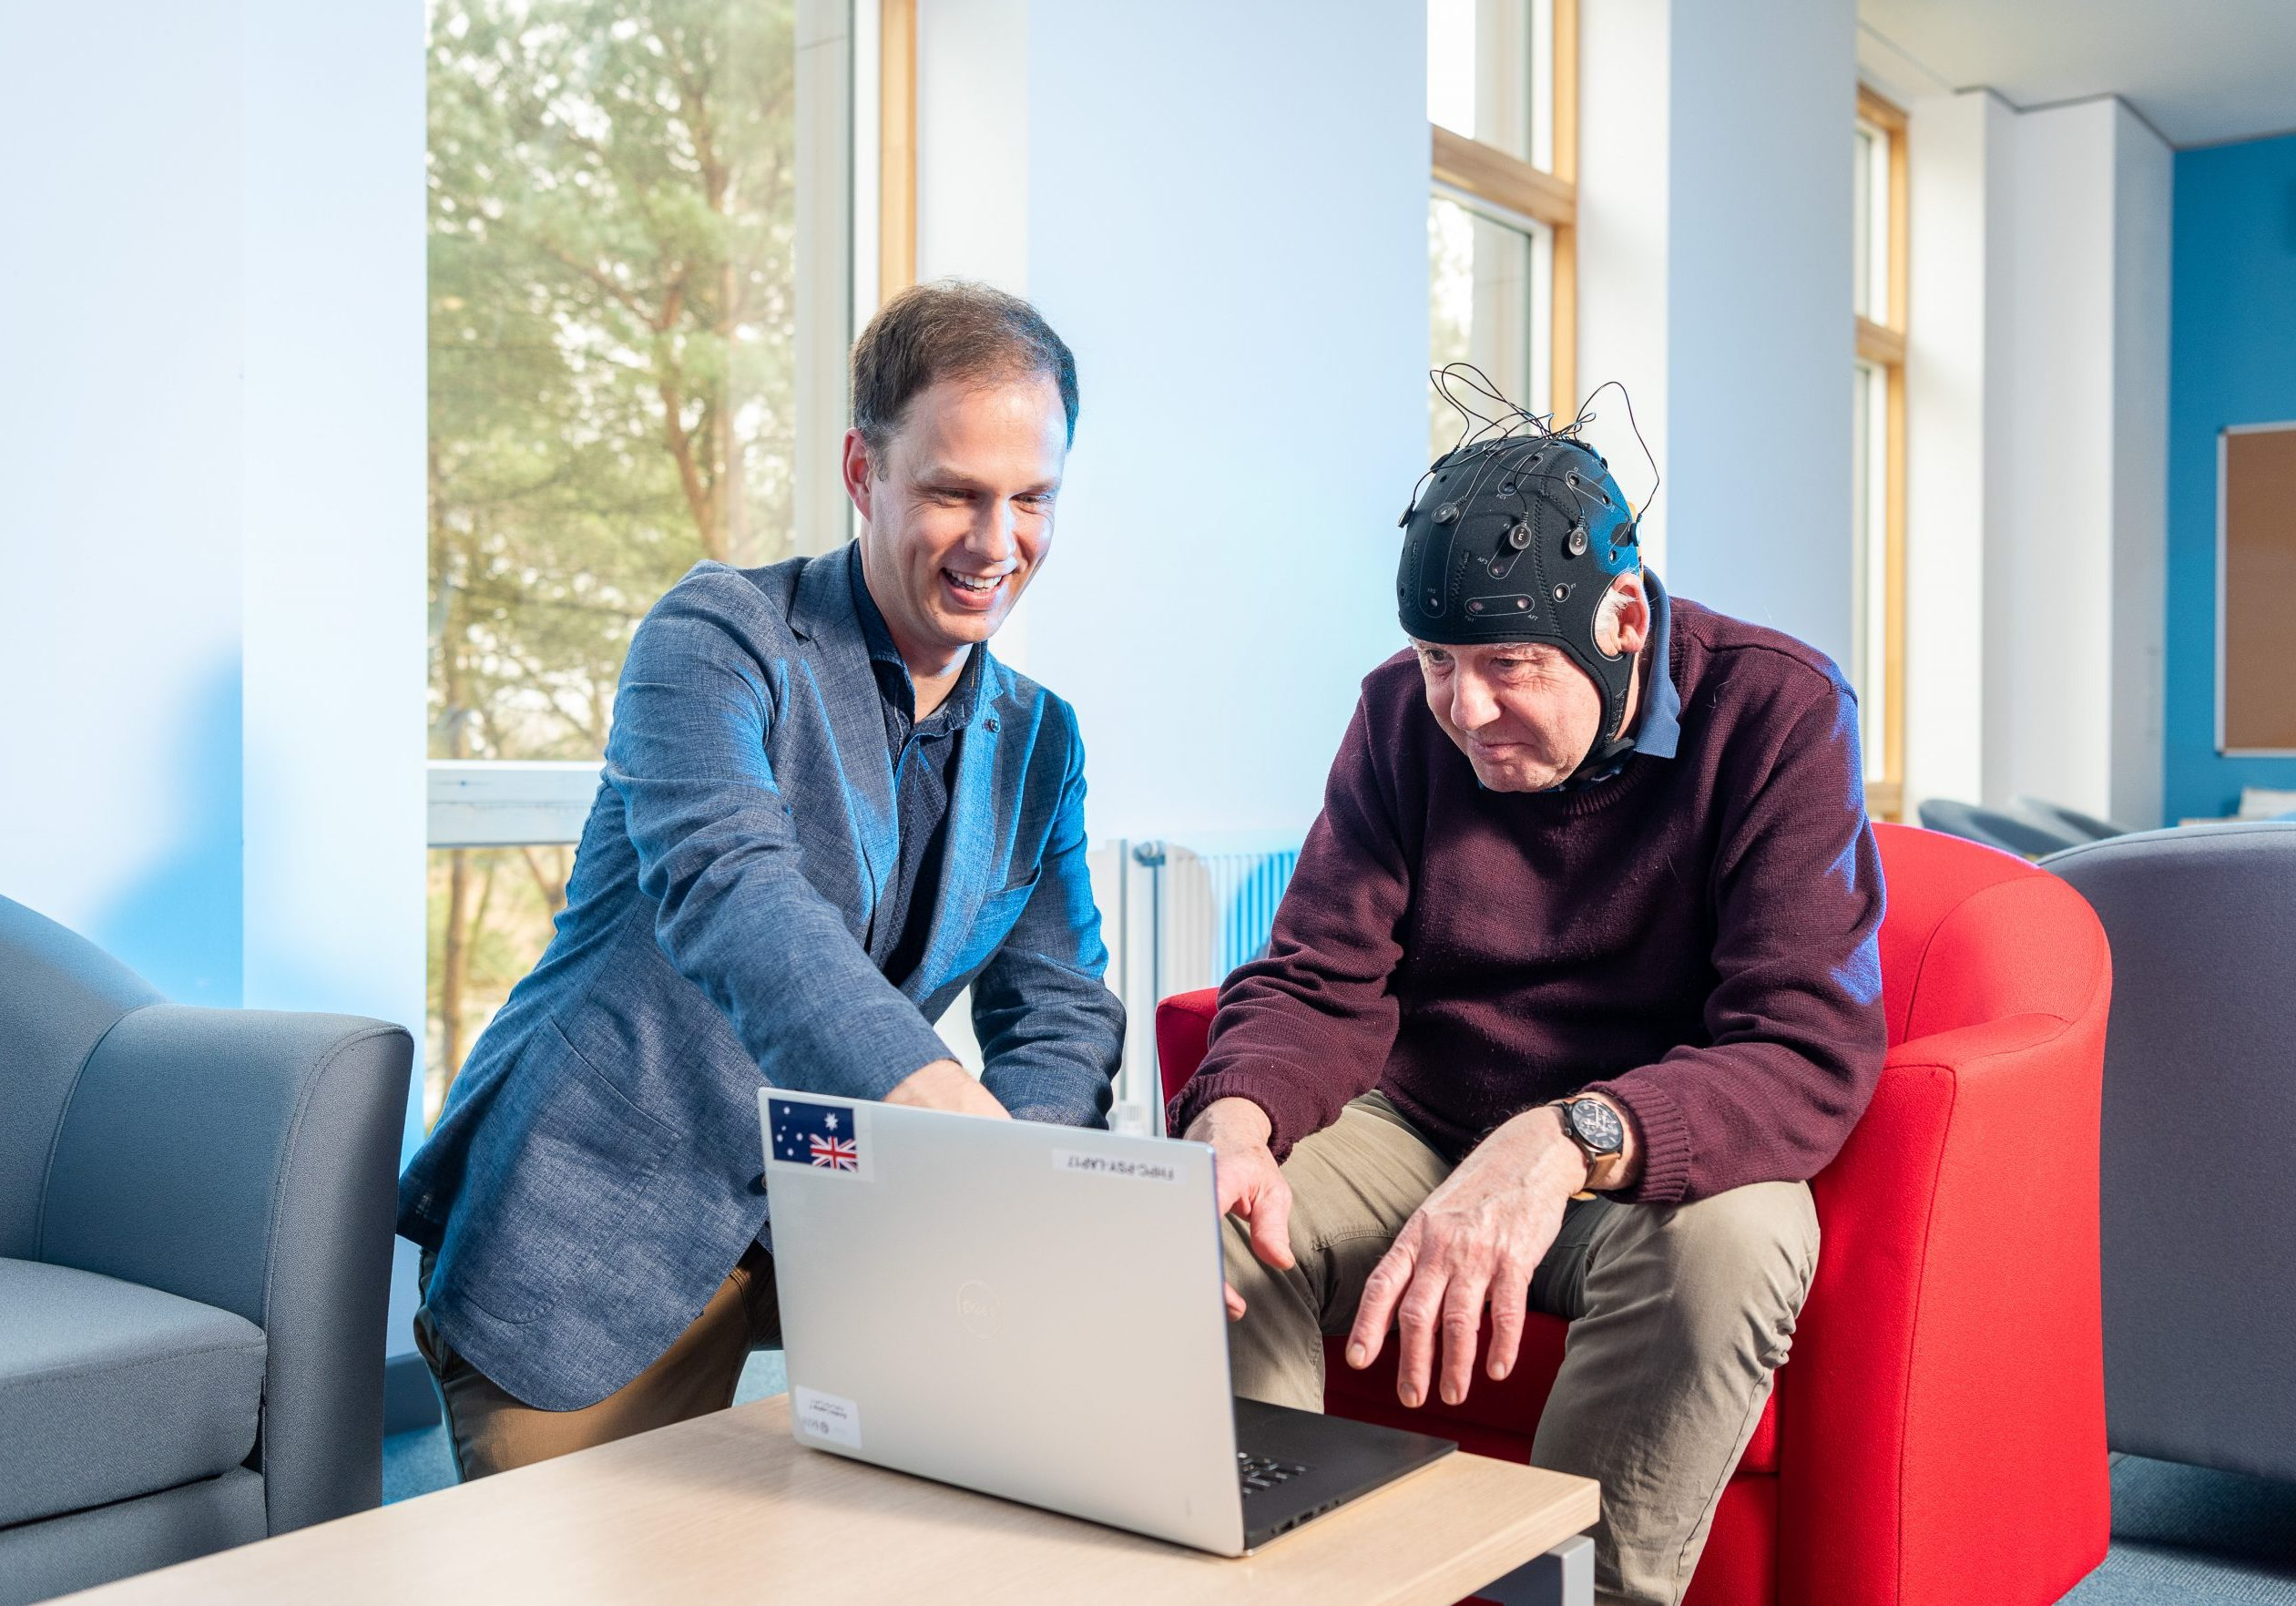 Dr George Stothart is sad next to an older man wearing the EEG headset and both are looking at a laptop on a small table.